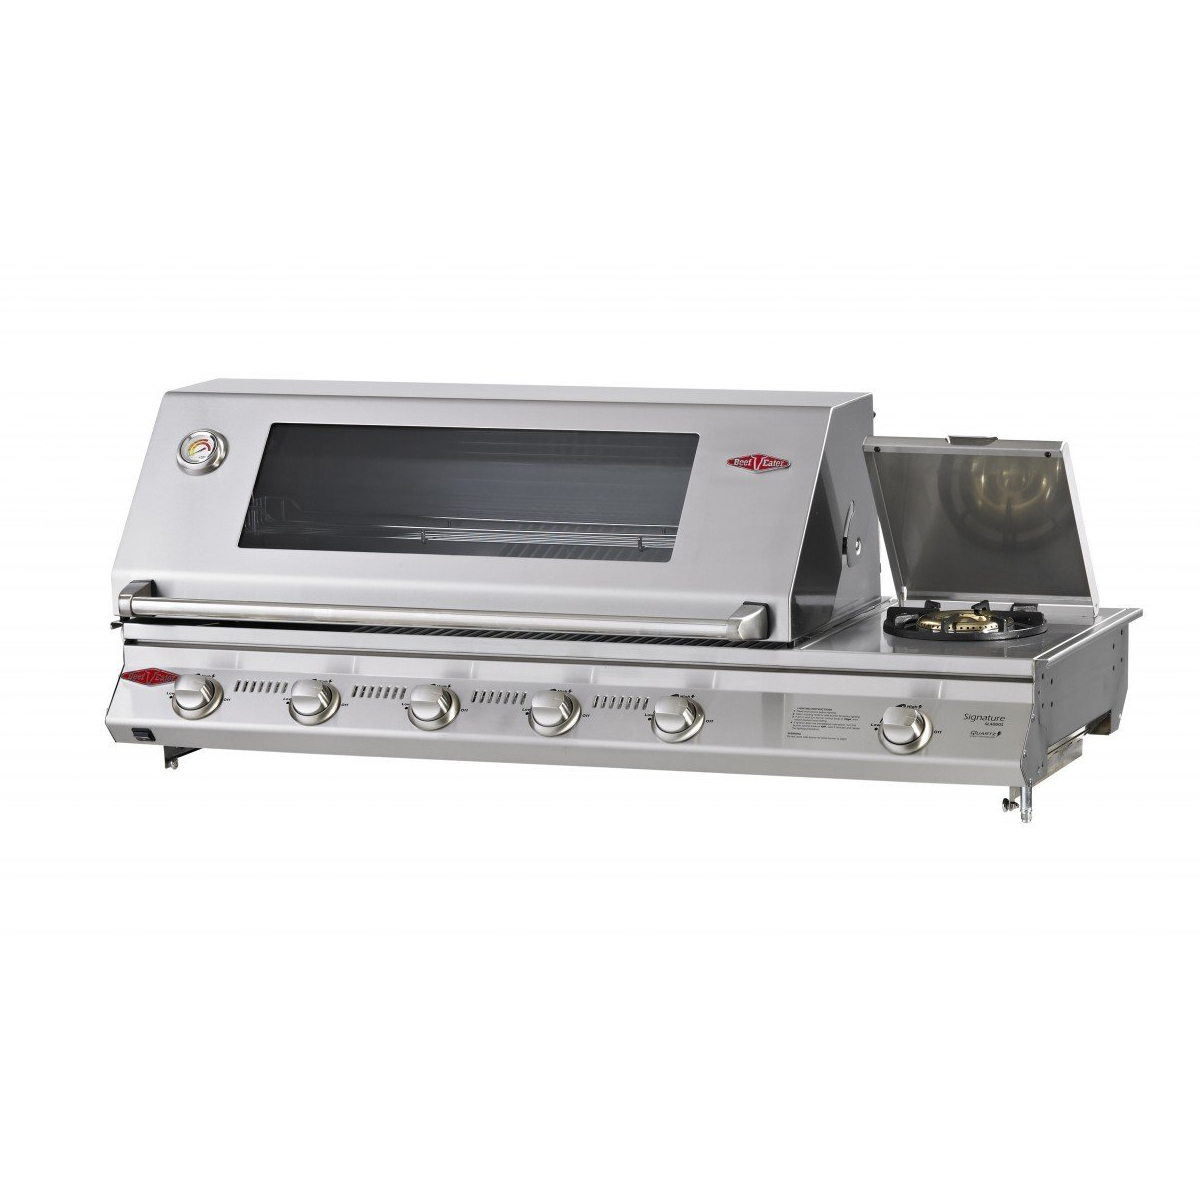 Beefeater BS31560 Signature SL4000 5 Burner Built In BBQ